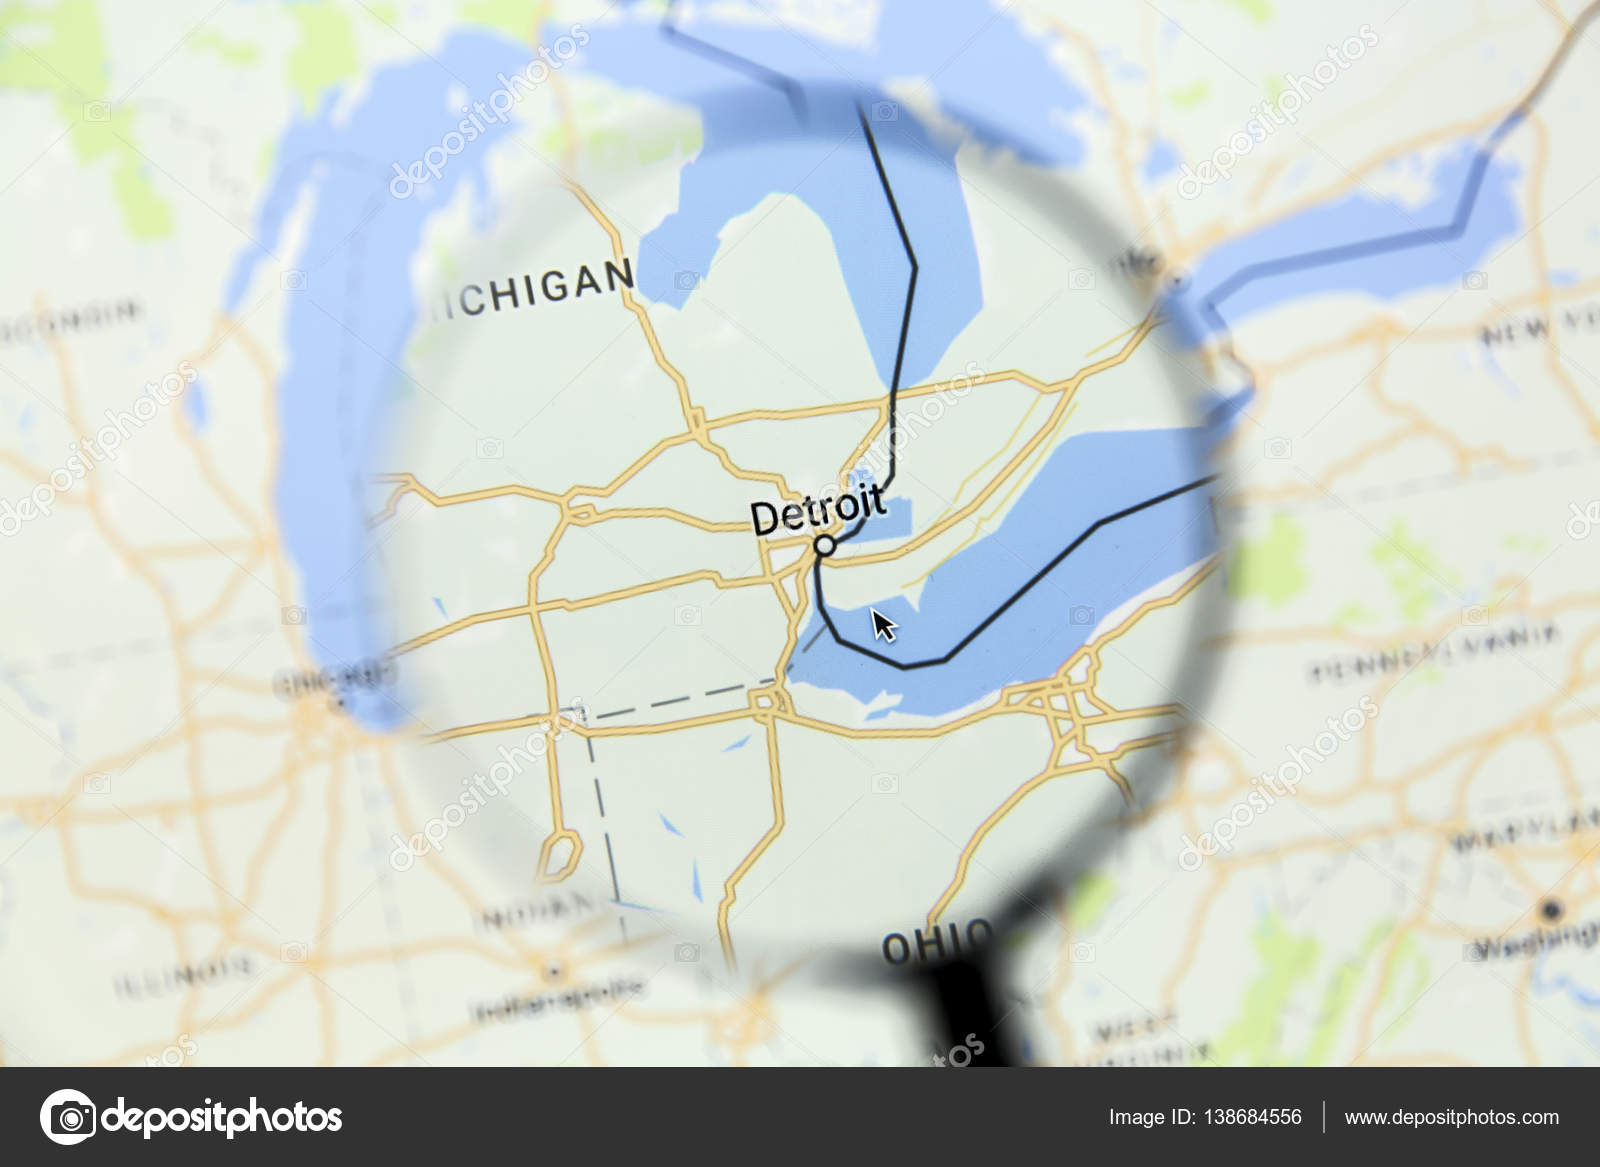 Detroit on Google Maps – Stock Editorial Photo © ibphoto #138684556